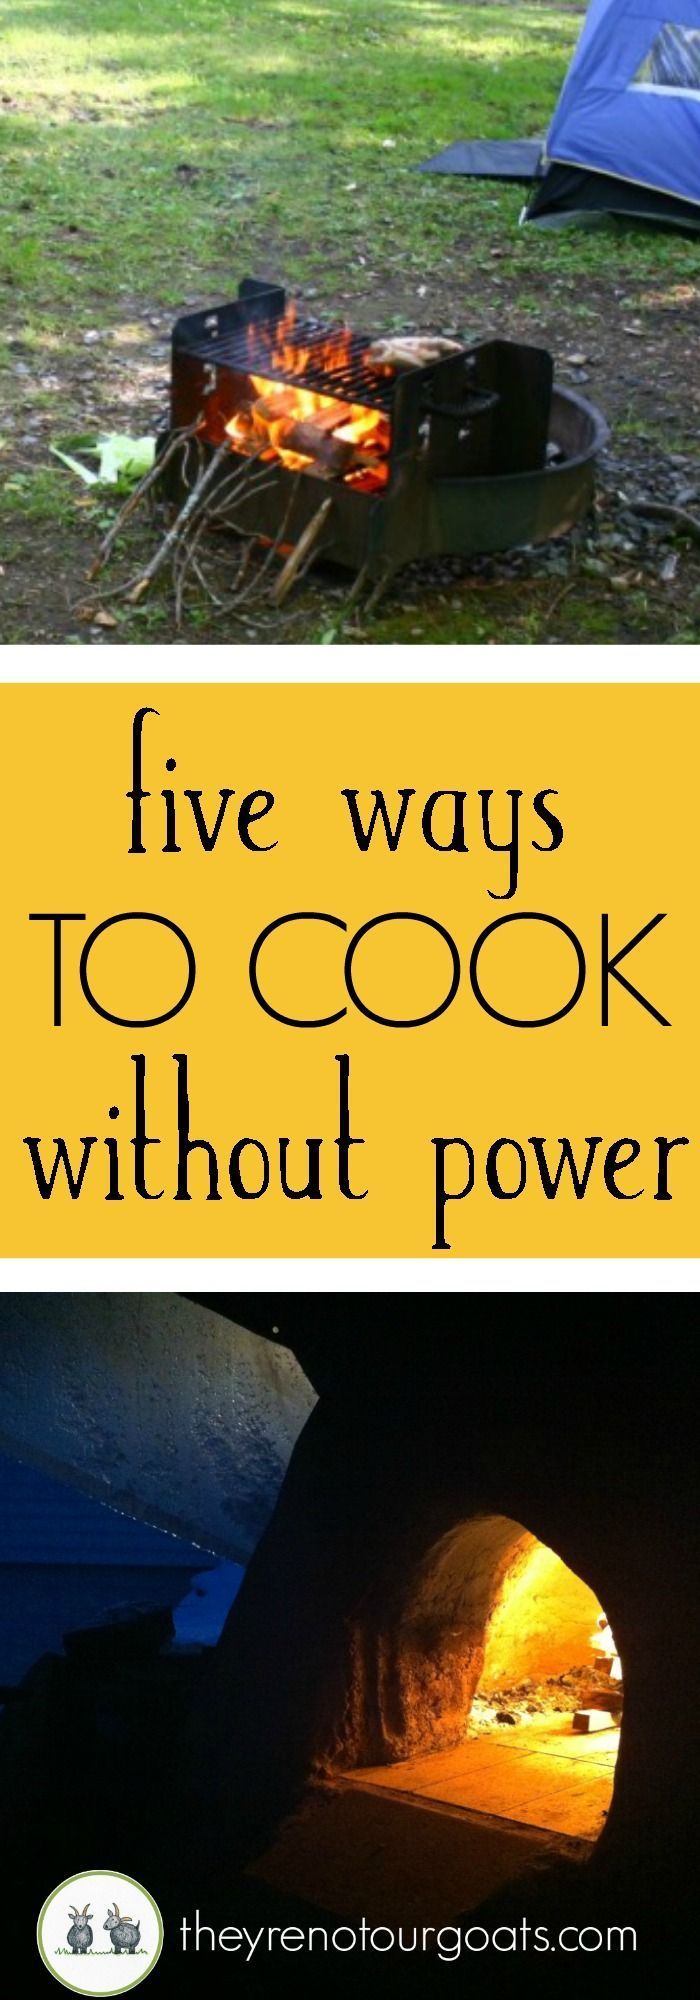 Be prepared for your next outage, camping trip, or just for a bit of fun cooking the old-fashioned way.